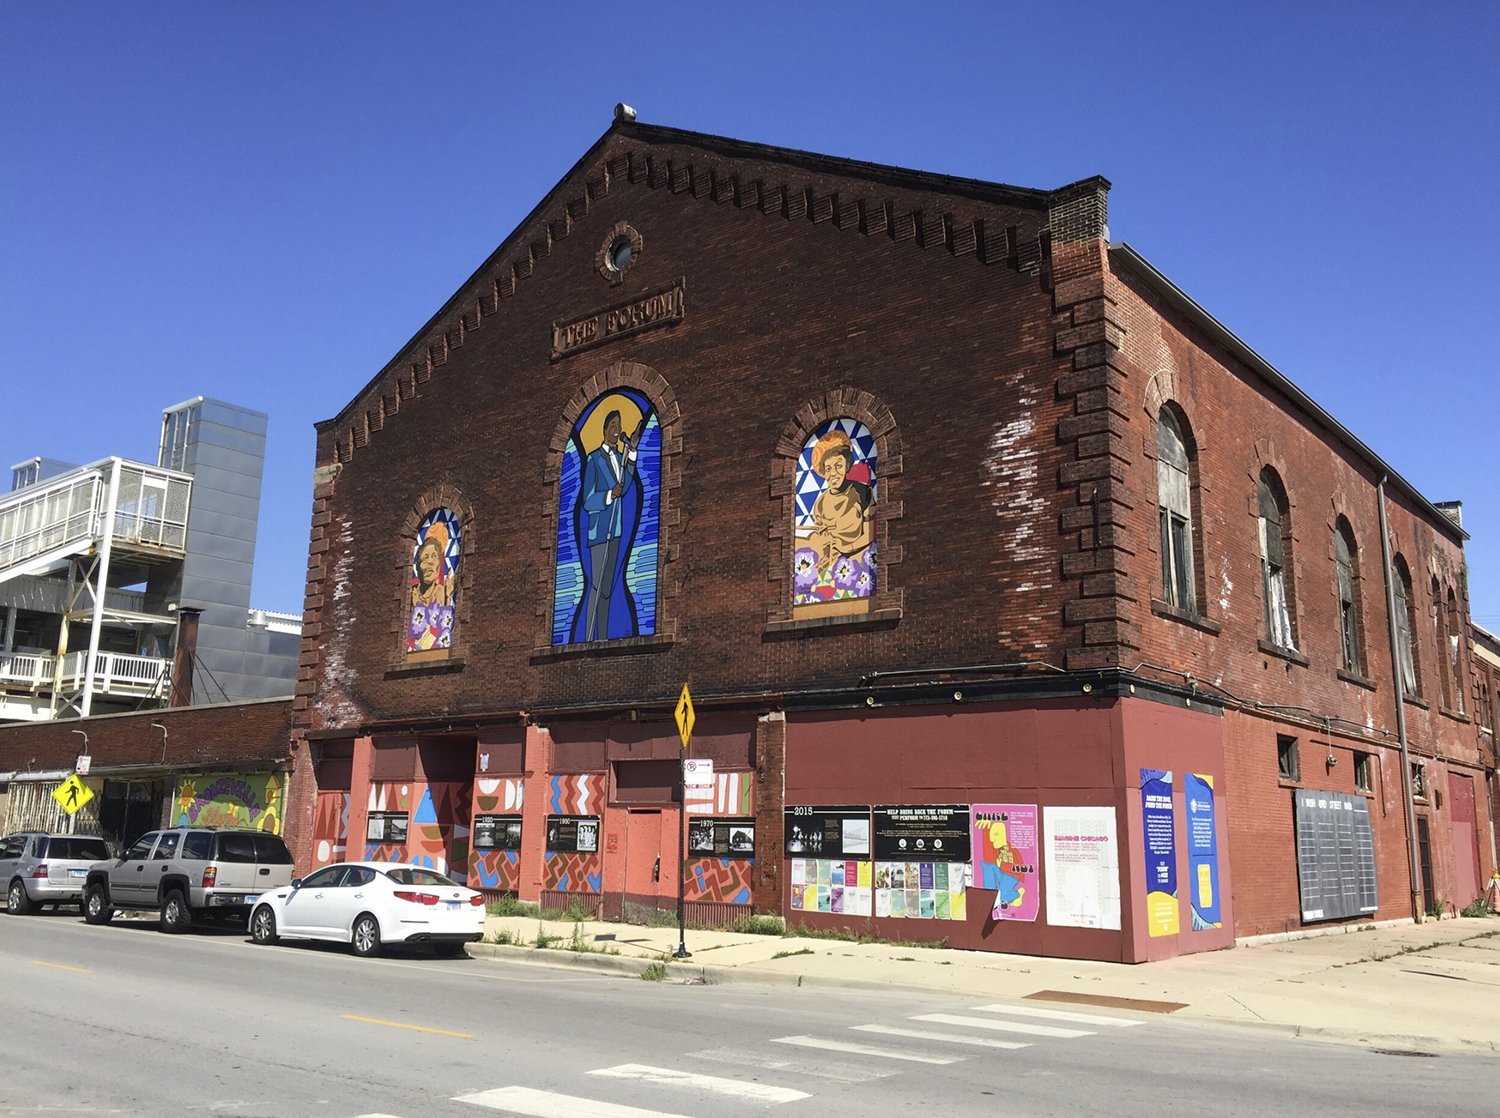 The Chicago City Council has approved the redevelopment plans for The Forum, located at 318 E 43rd Street in Bronzeville.